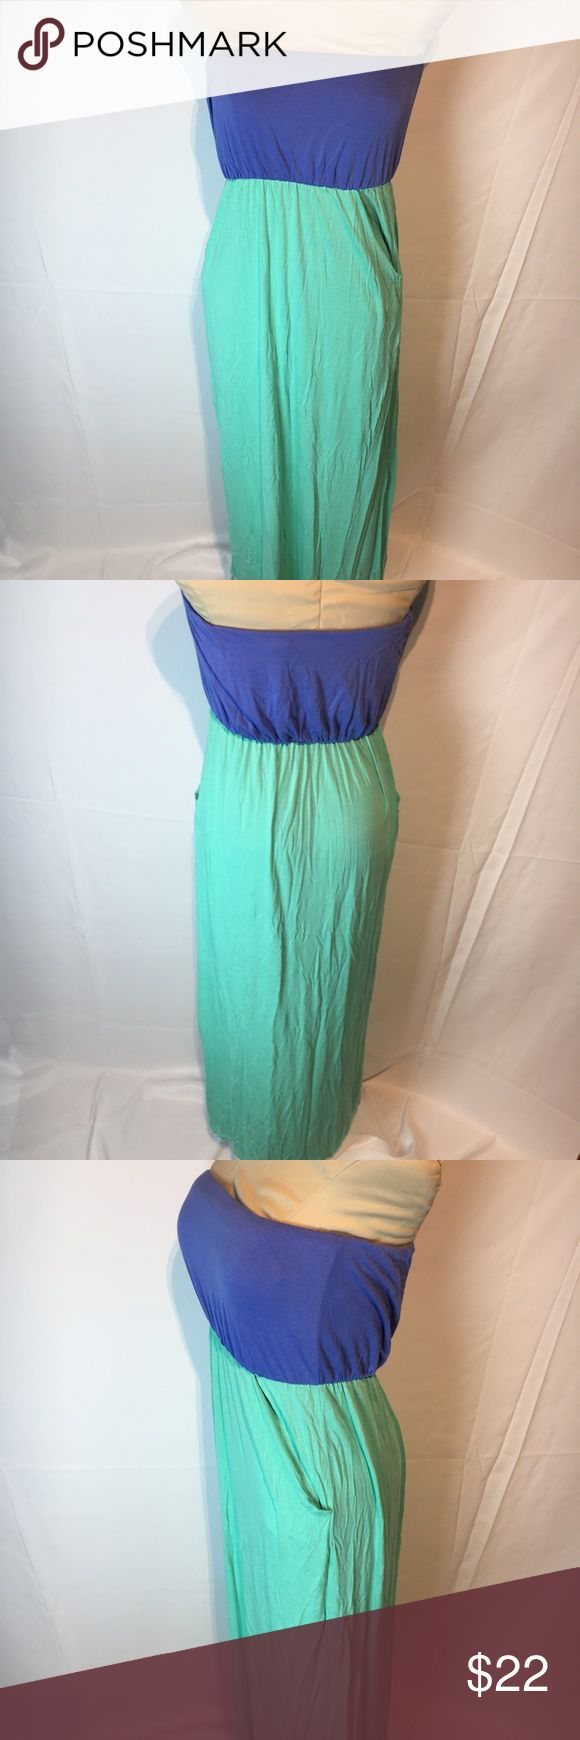 Strapless maxi dress 👗 Strapless periwinkle and turquoise maxi dress with pockets! Pixi + Ivy Dresses Maxi